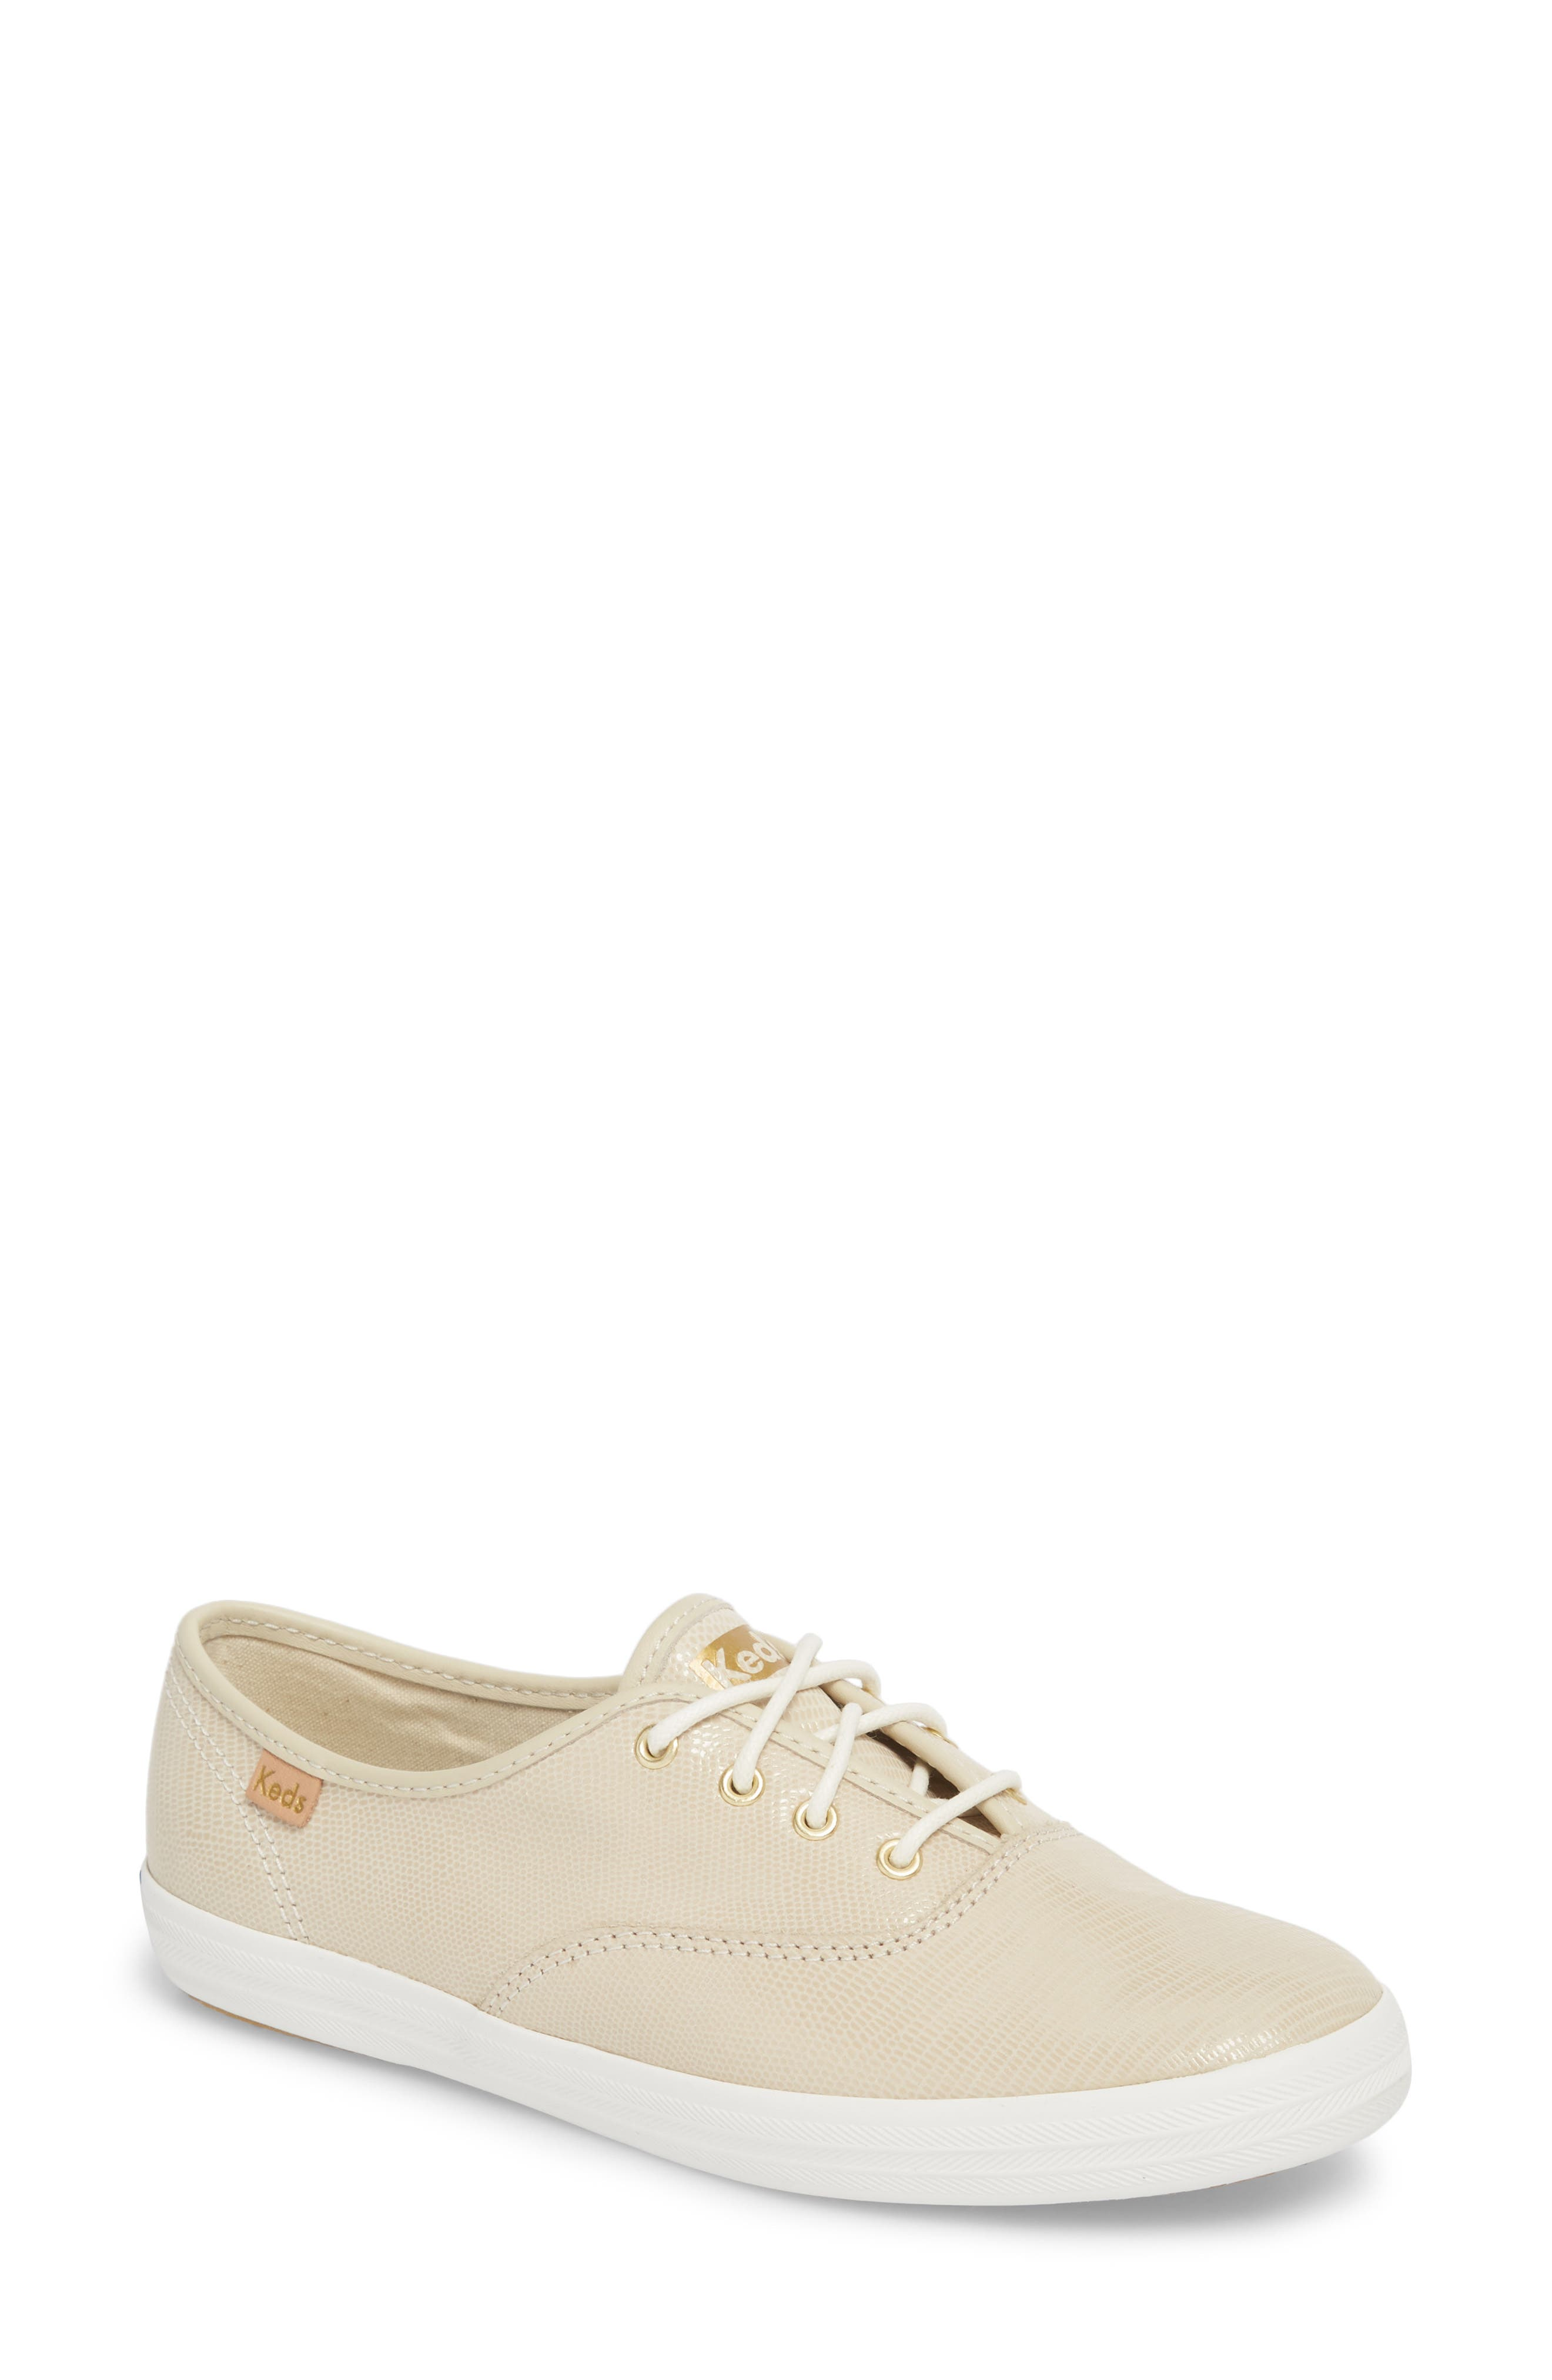 Champion Pretty Leather Sneaker,                             Main thumbnail 1, color,                             900